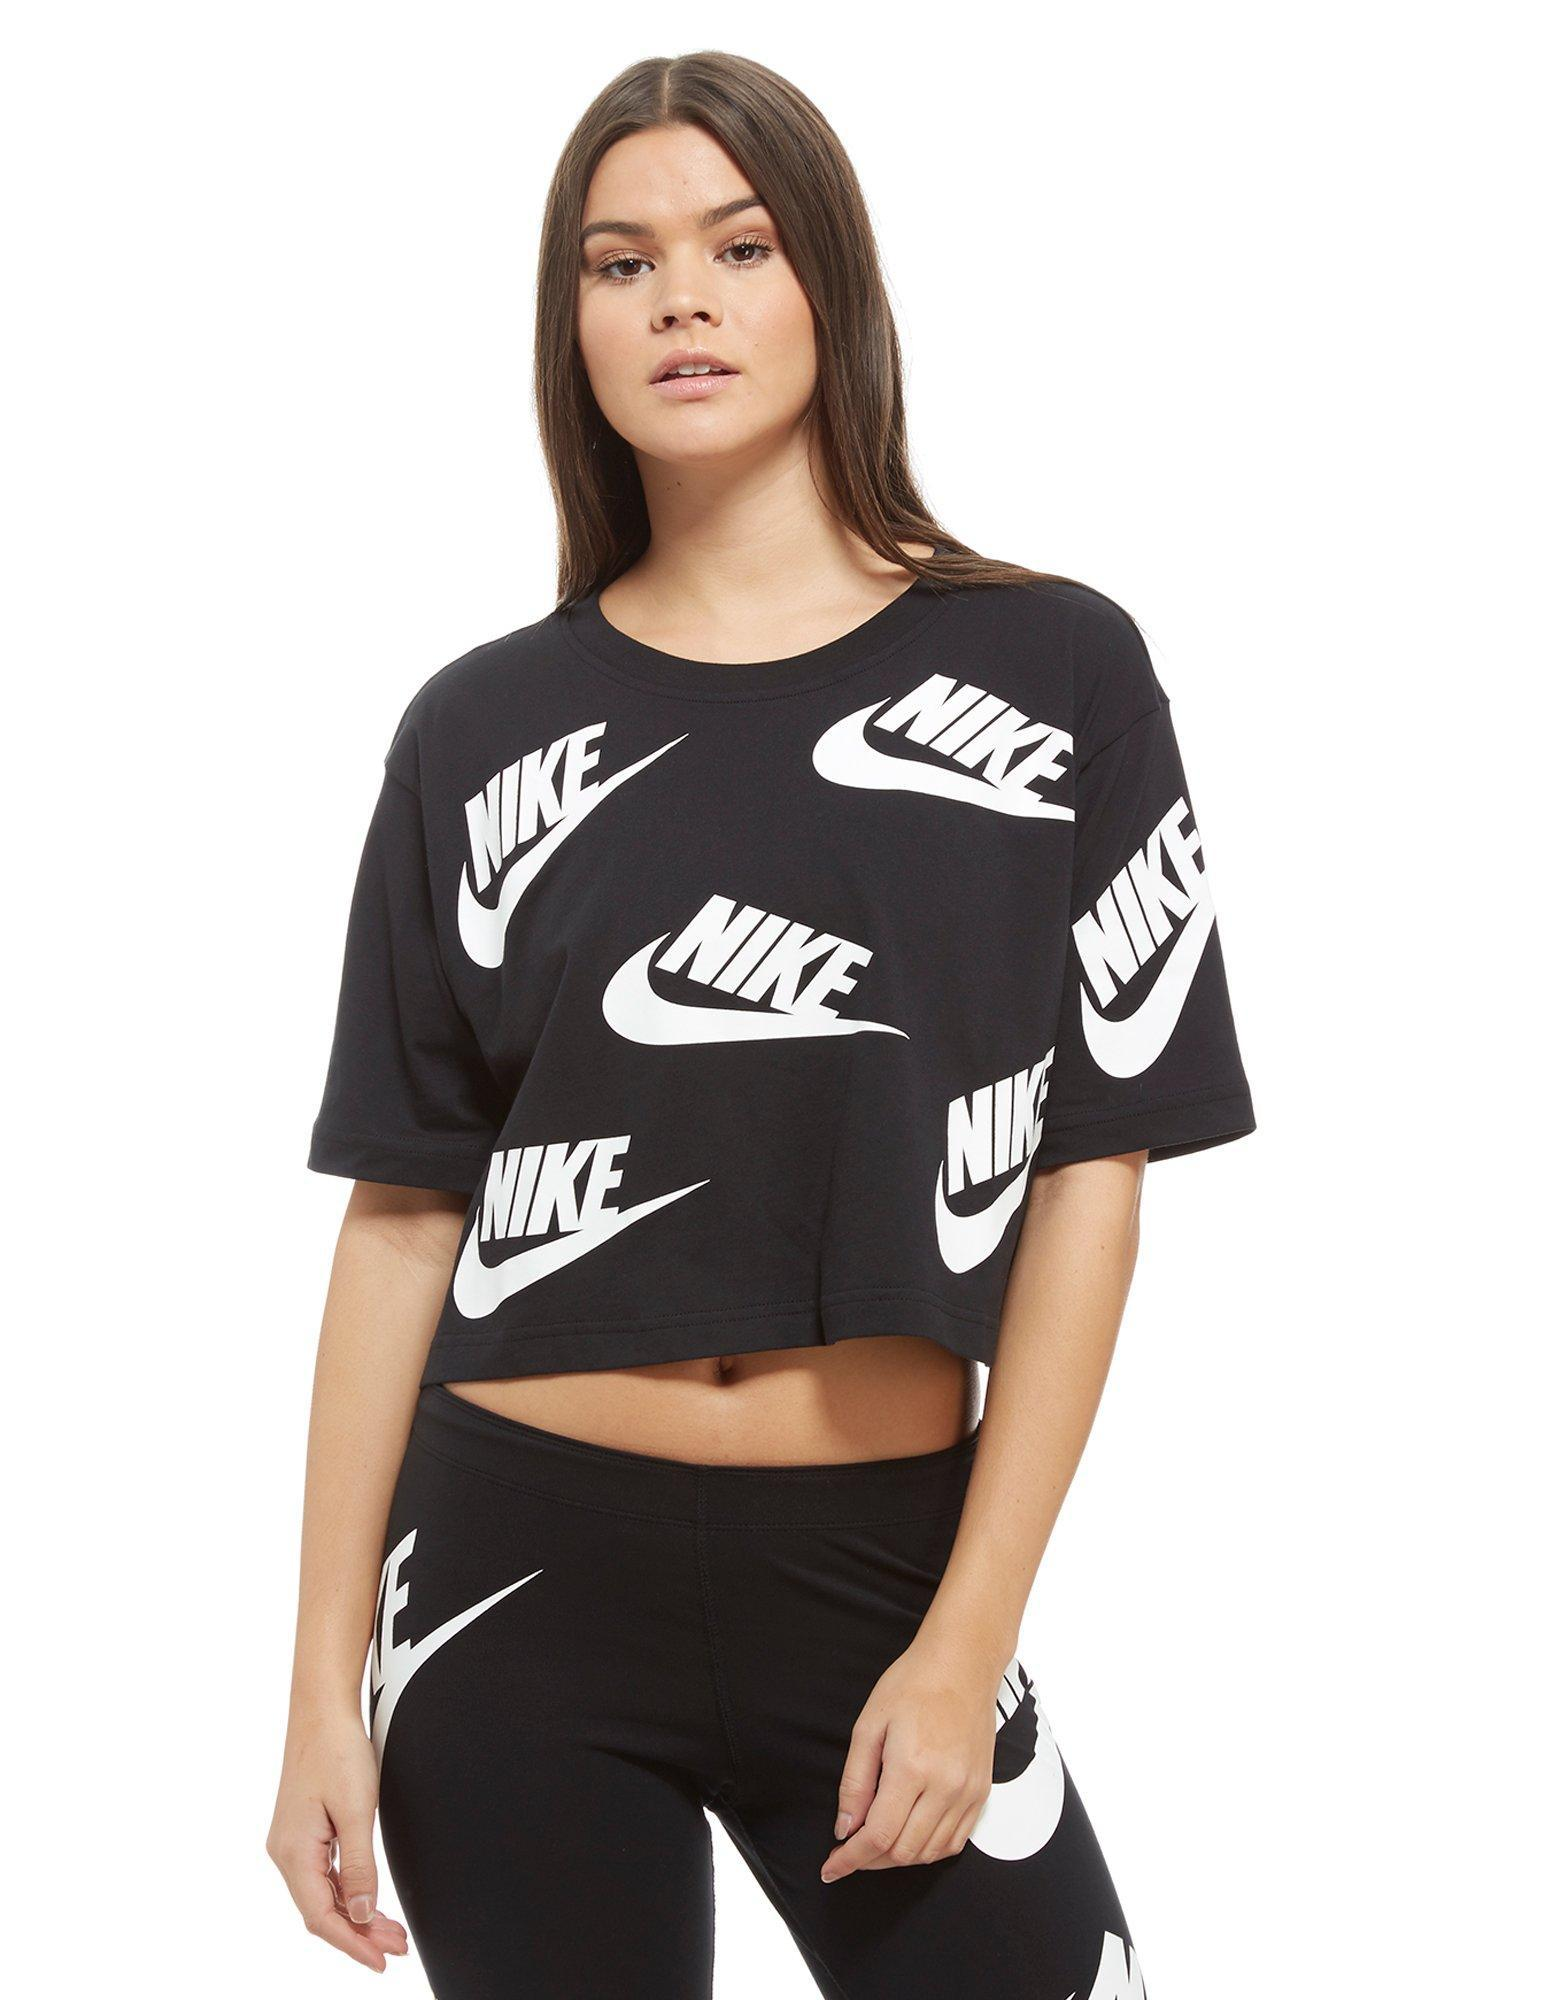 5665e068447 Lyst - Nike All Over Print Futura Crop T-shirt in Black